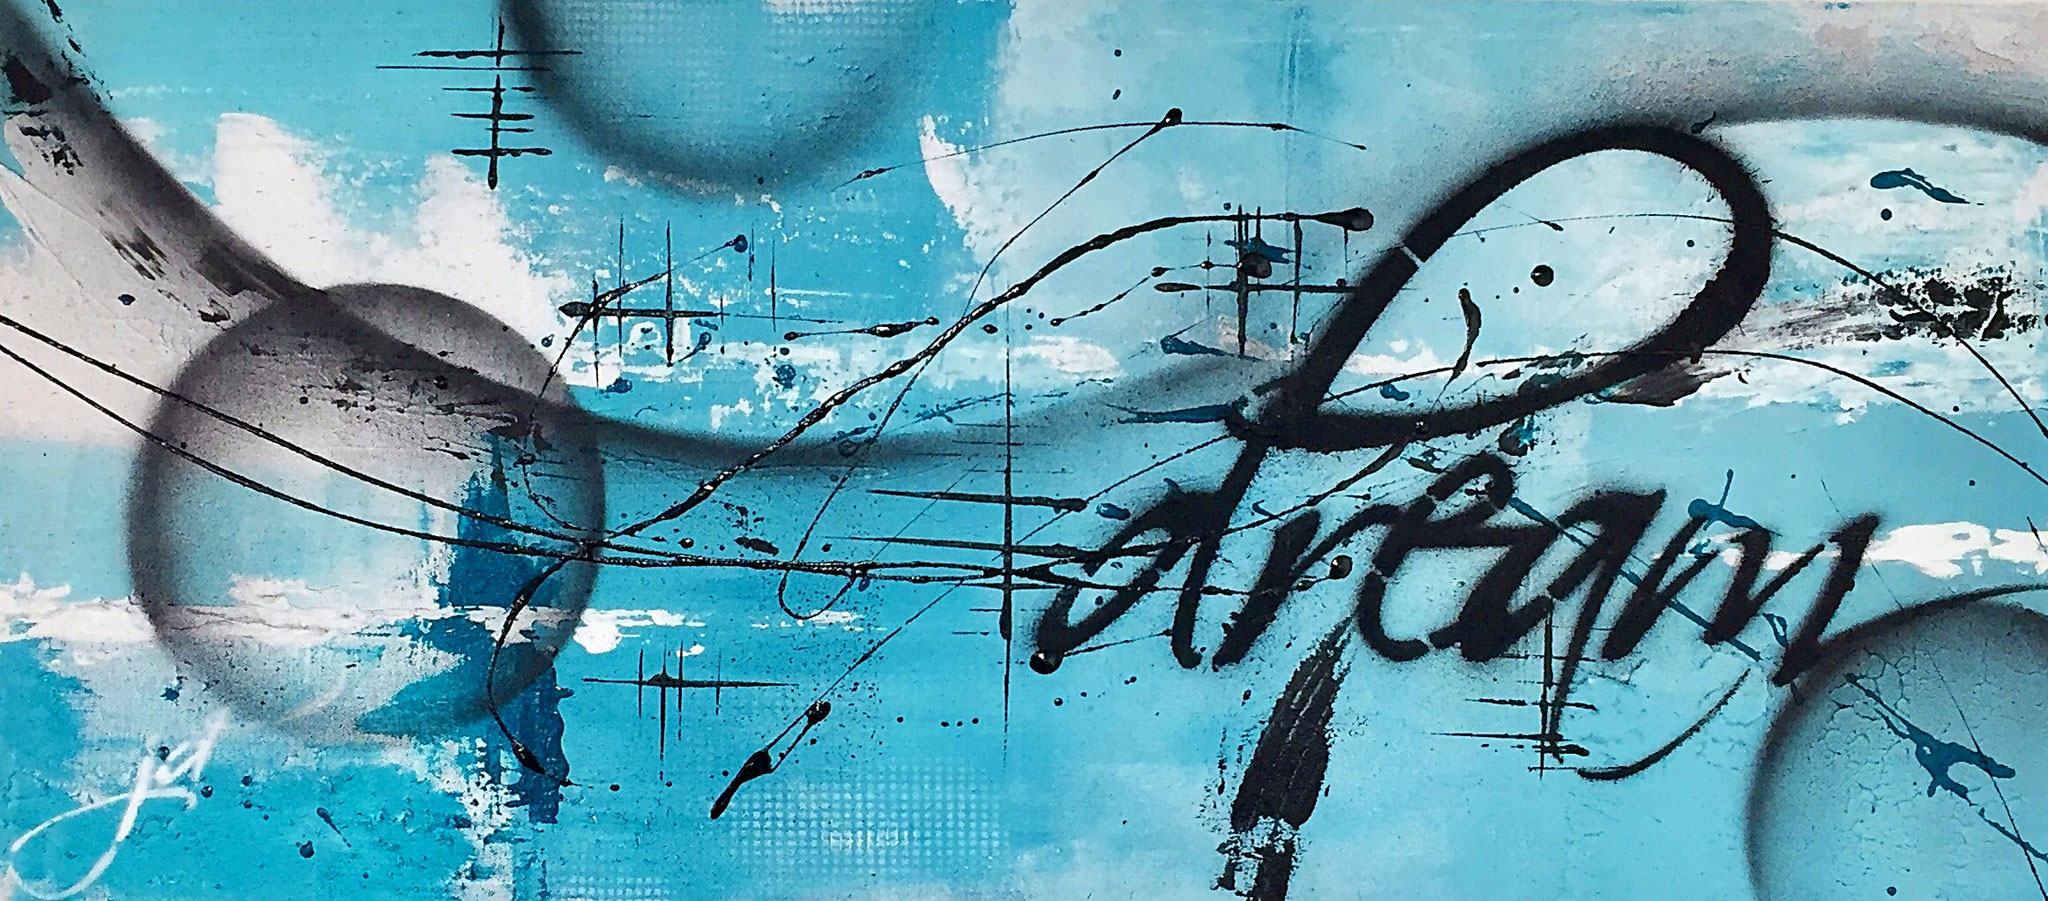 40 x 90 cm / floating dream / Canvas and Mixmedia / 2016